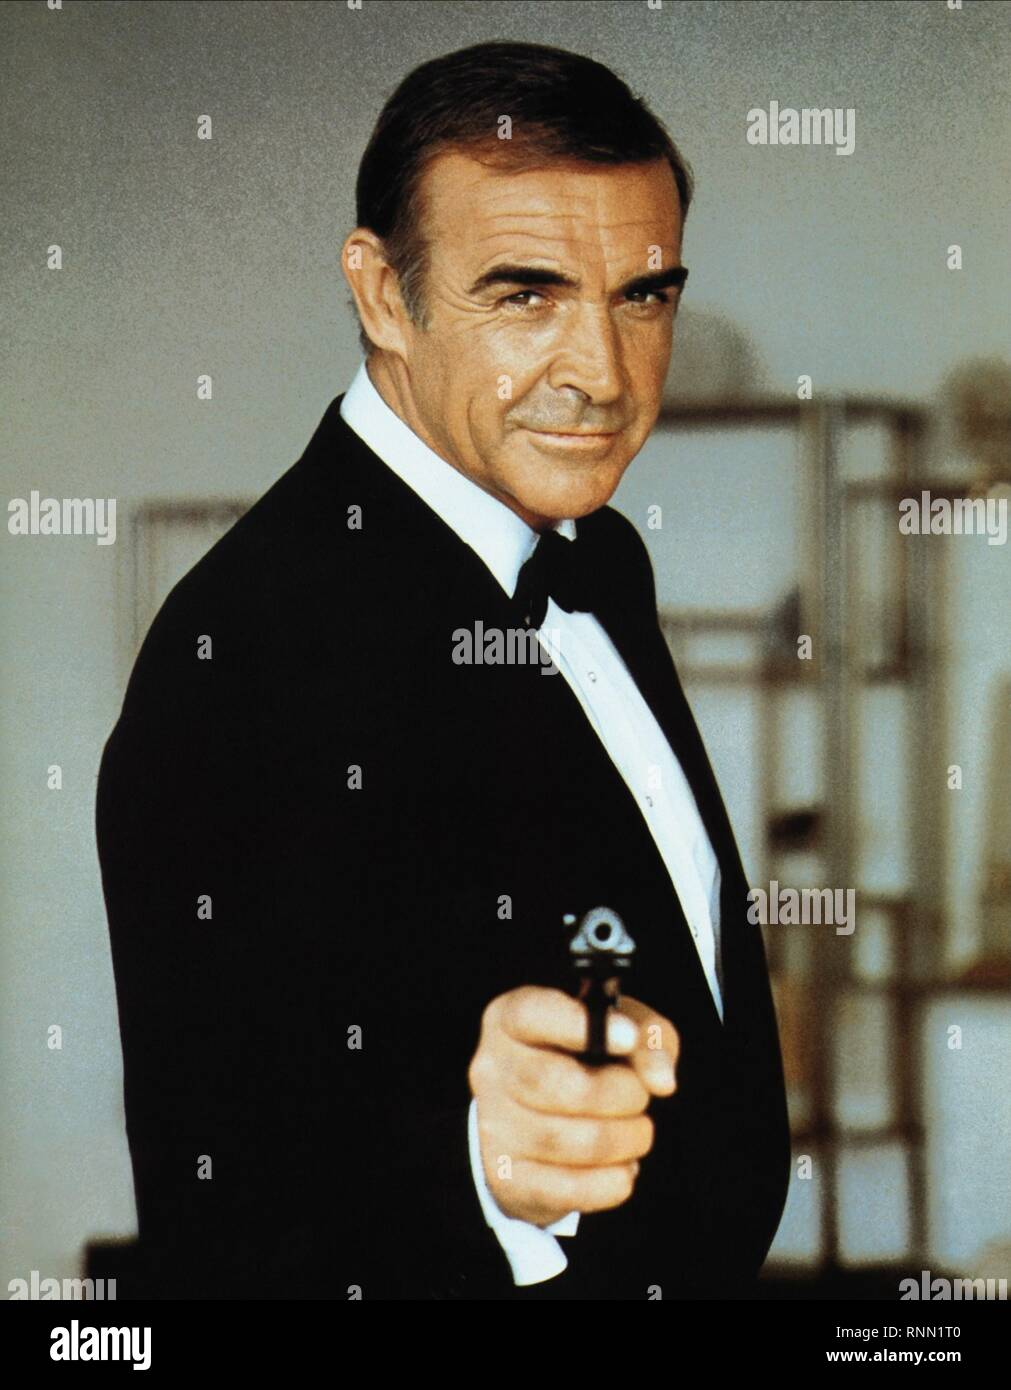 NEVER SAY NEVER AGAIN, SEAN CONNERY, 1983 - Stock Image